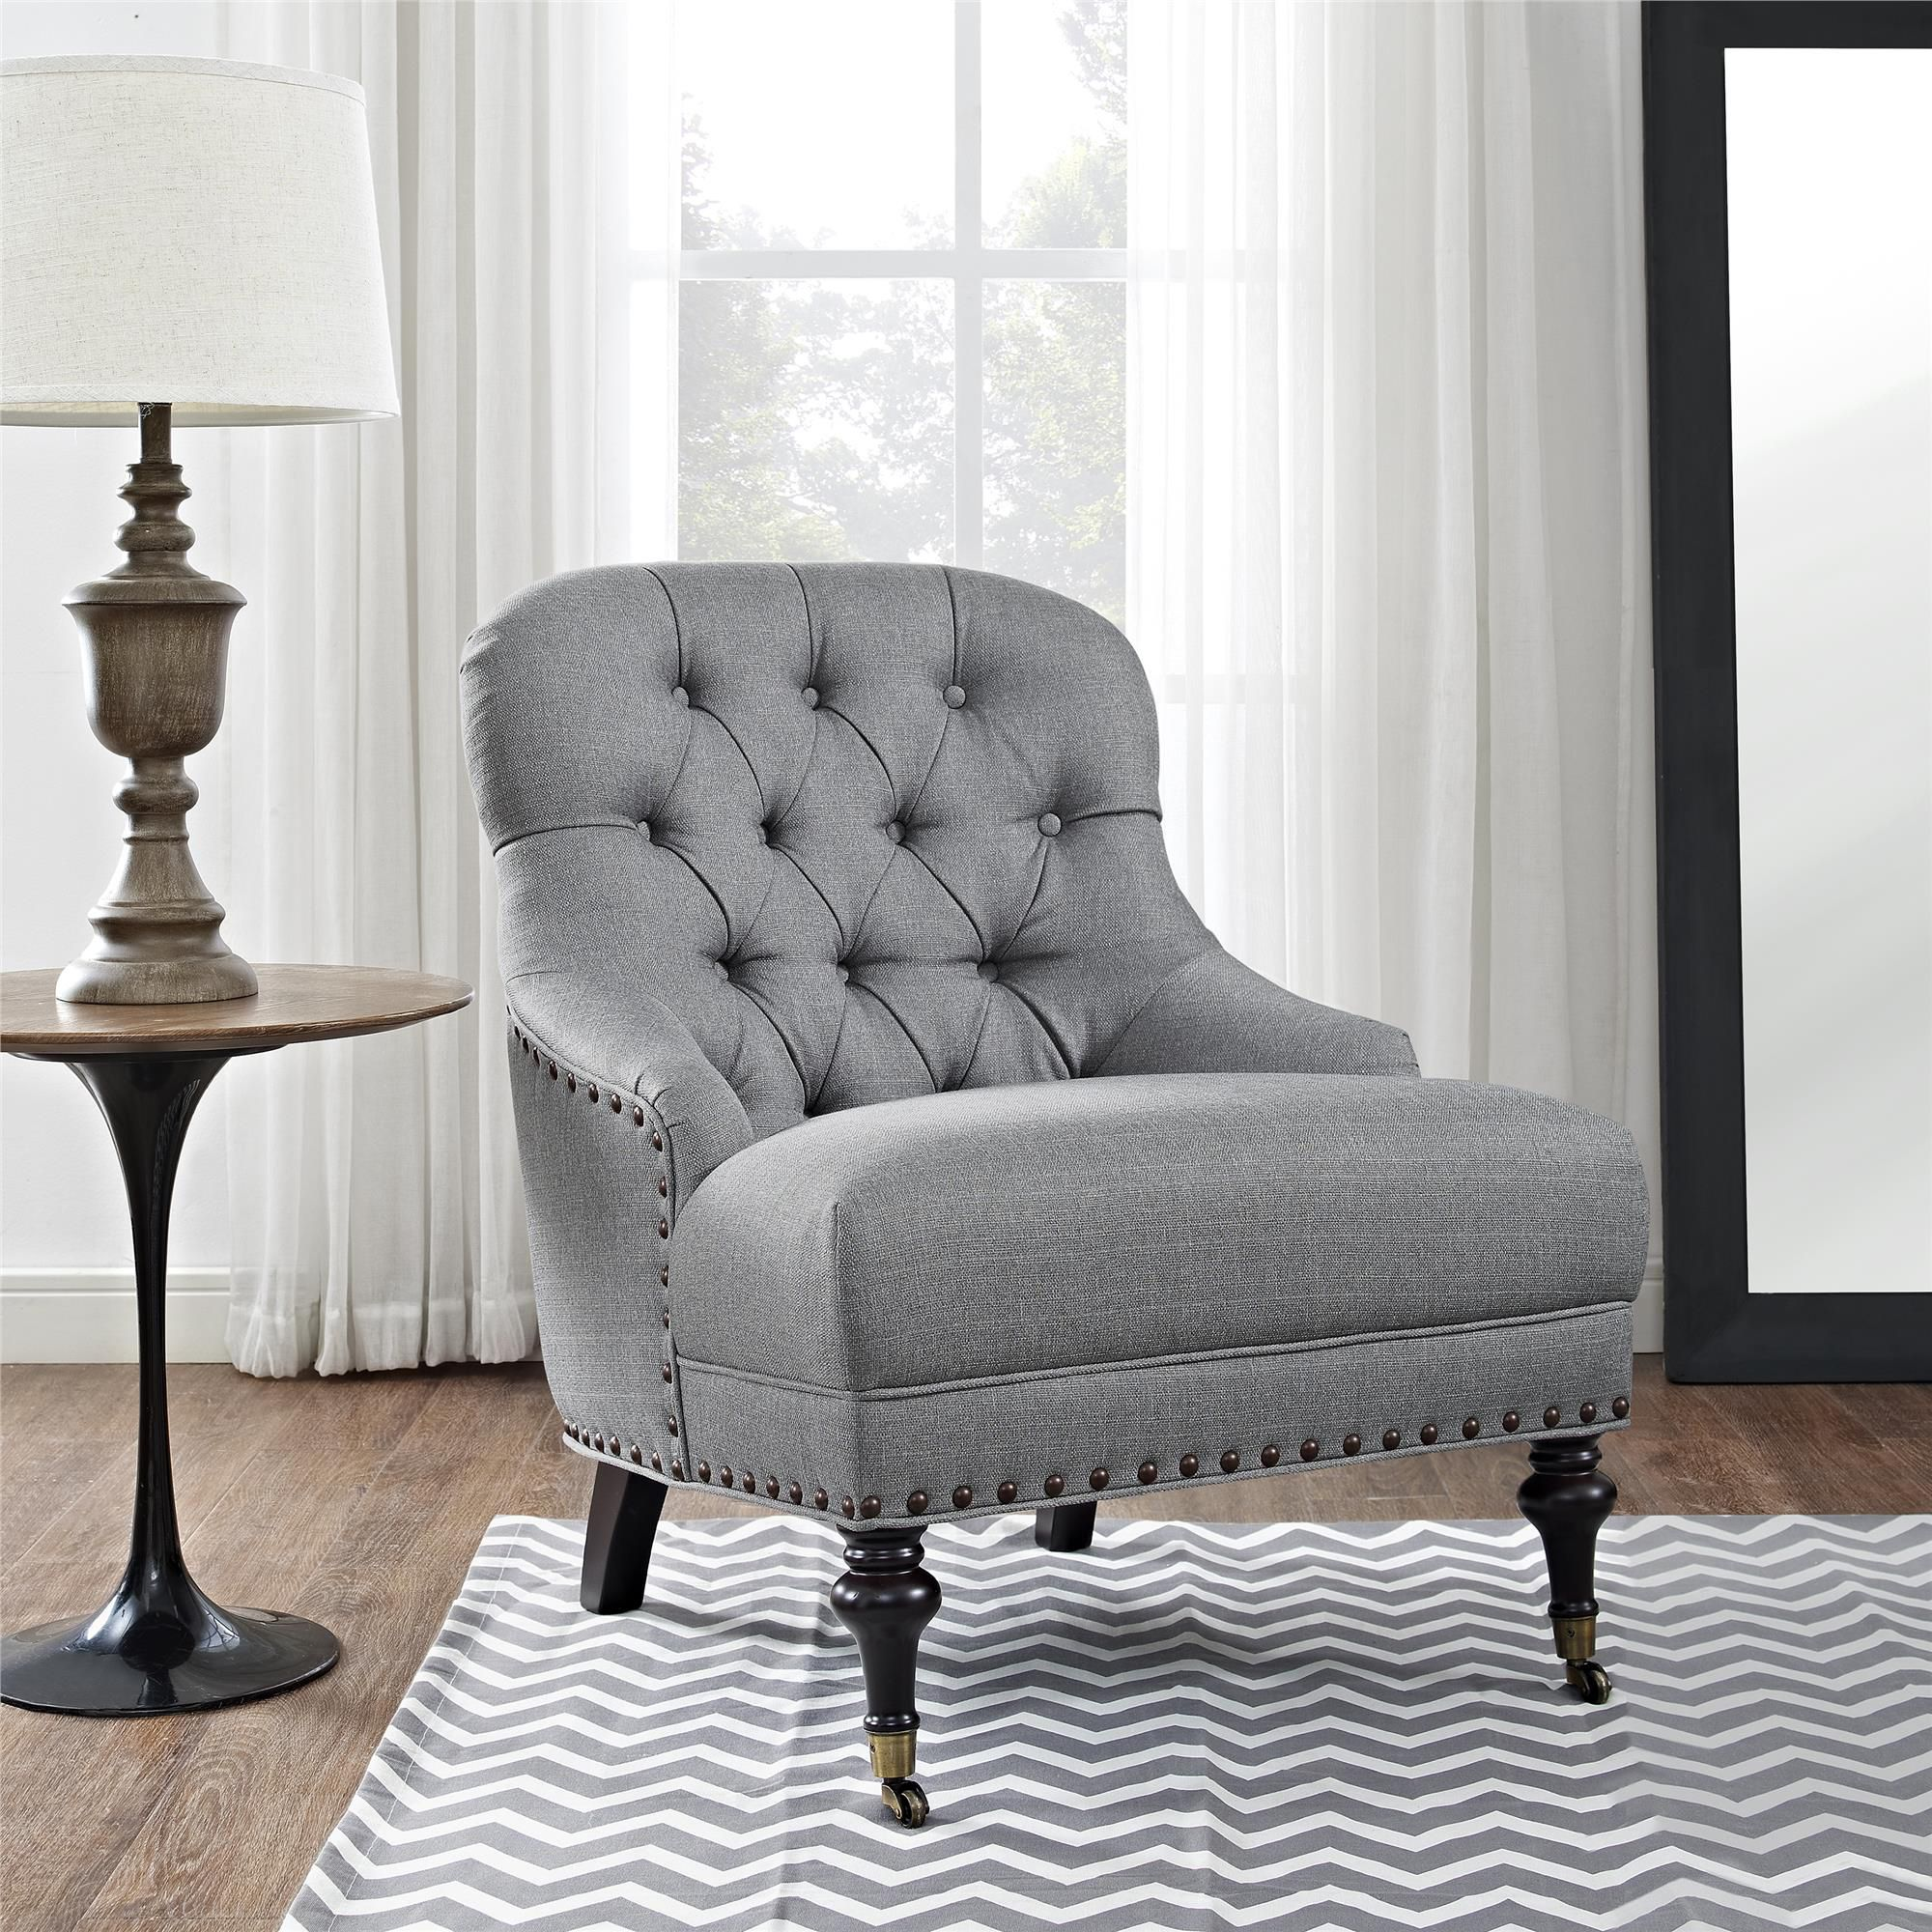 Get Quality Chairs For Living Room To Make It Comfortable Tufted